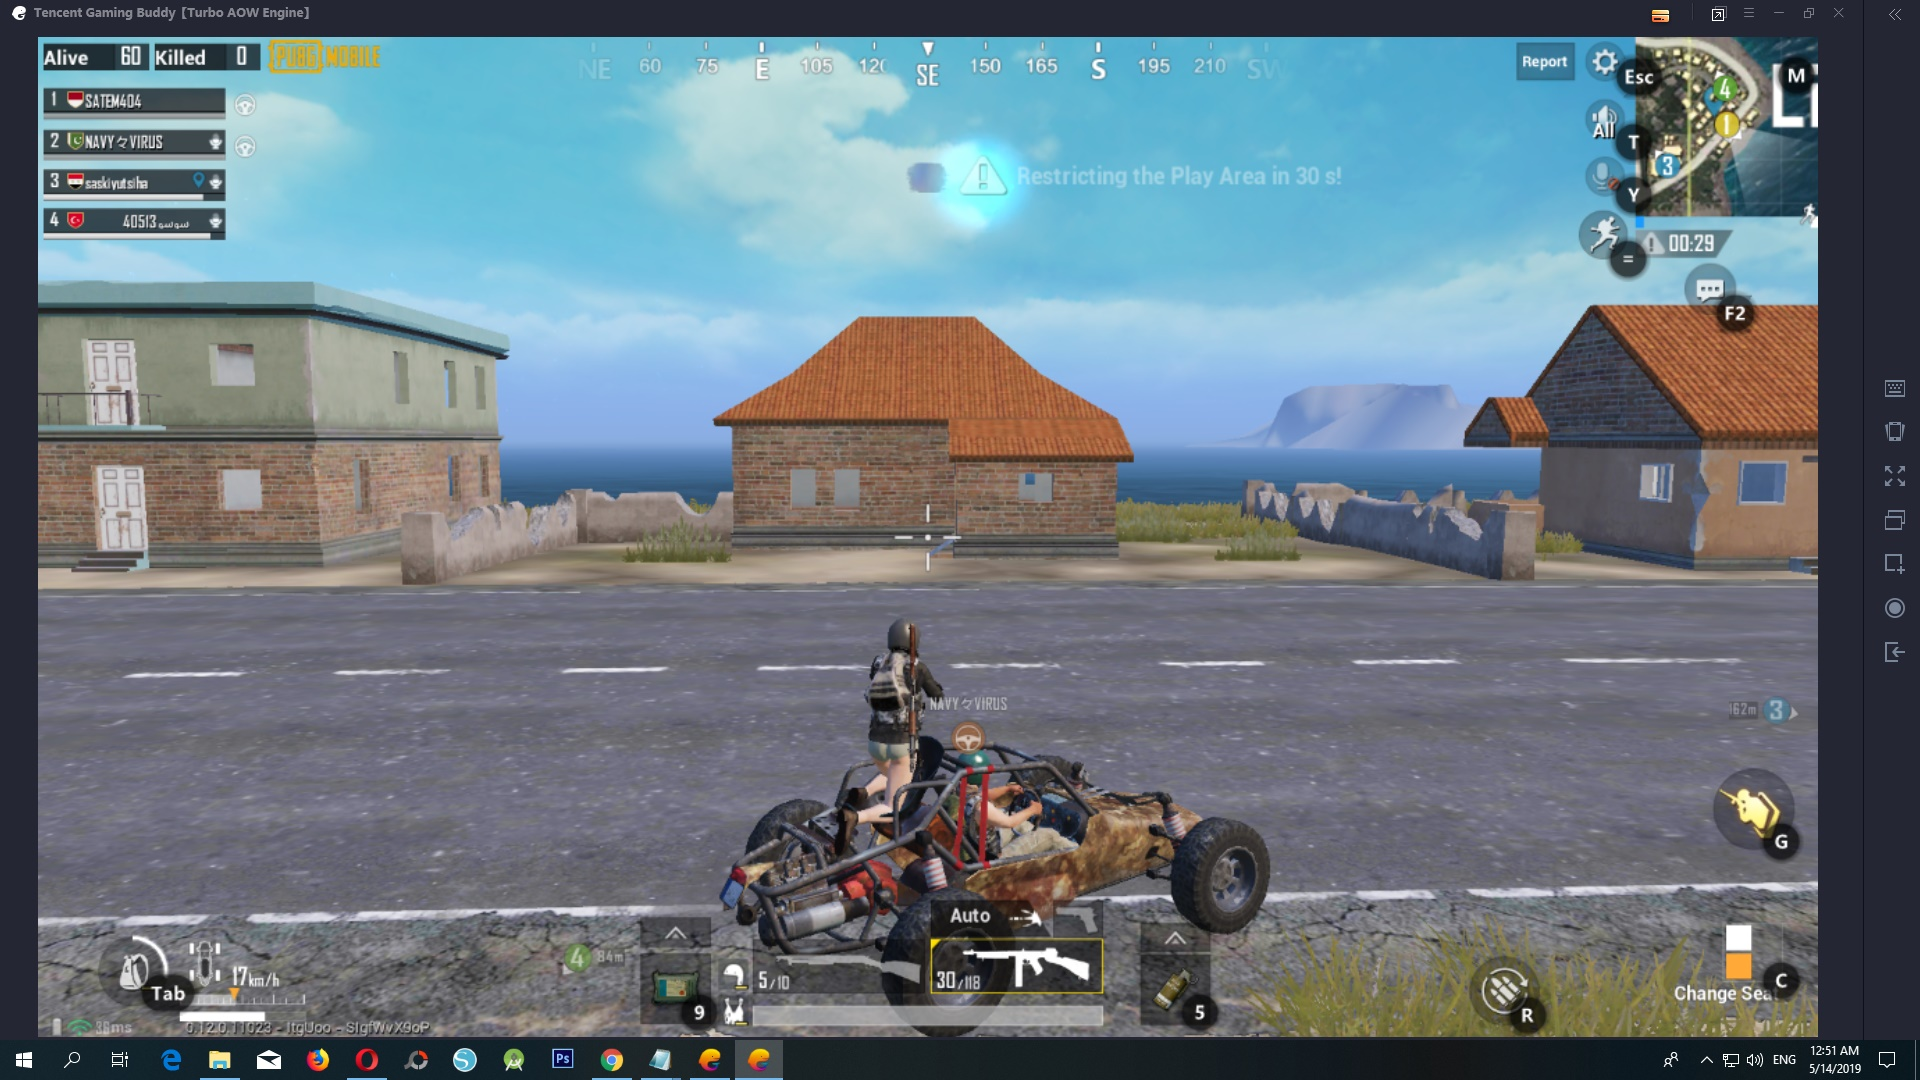 Playing PUBG on a PC with an emulator More fun